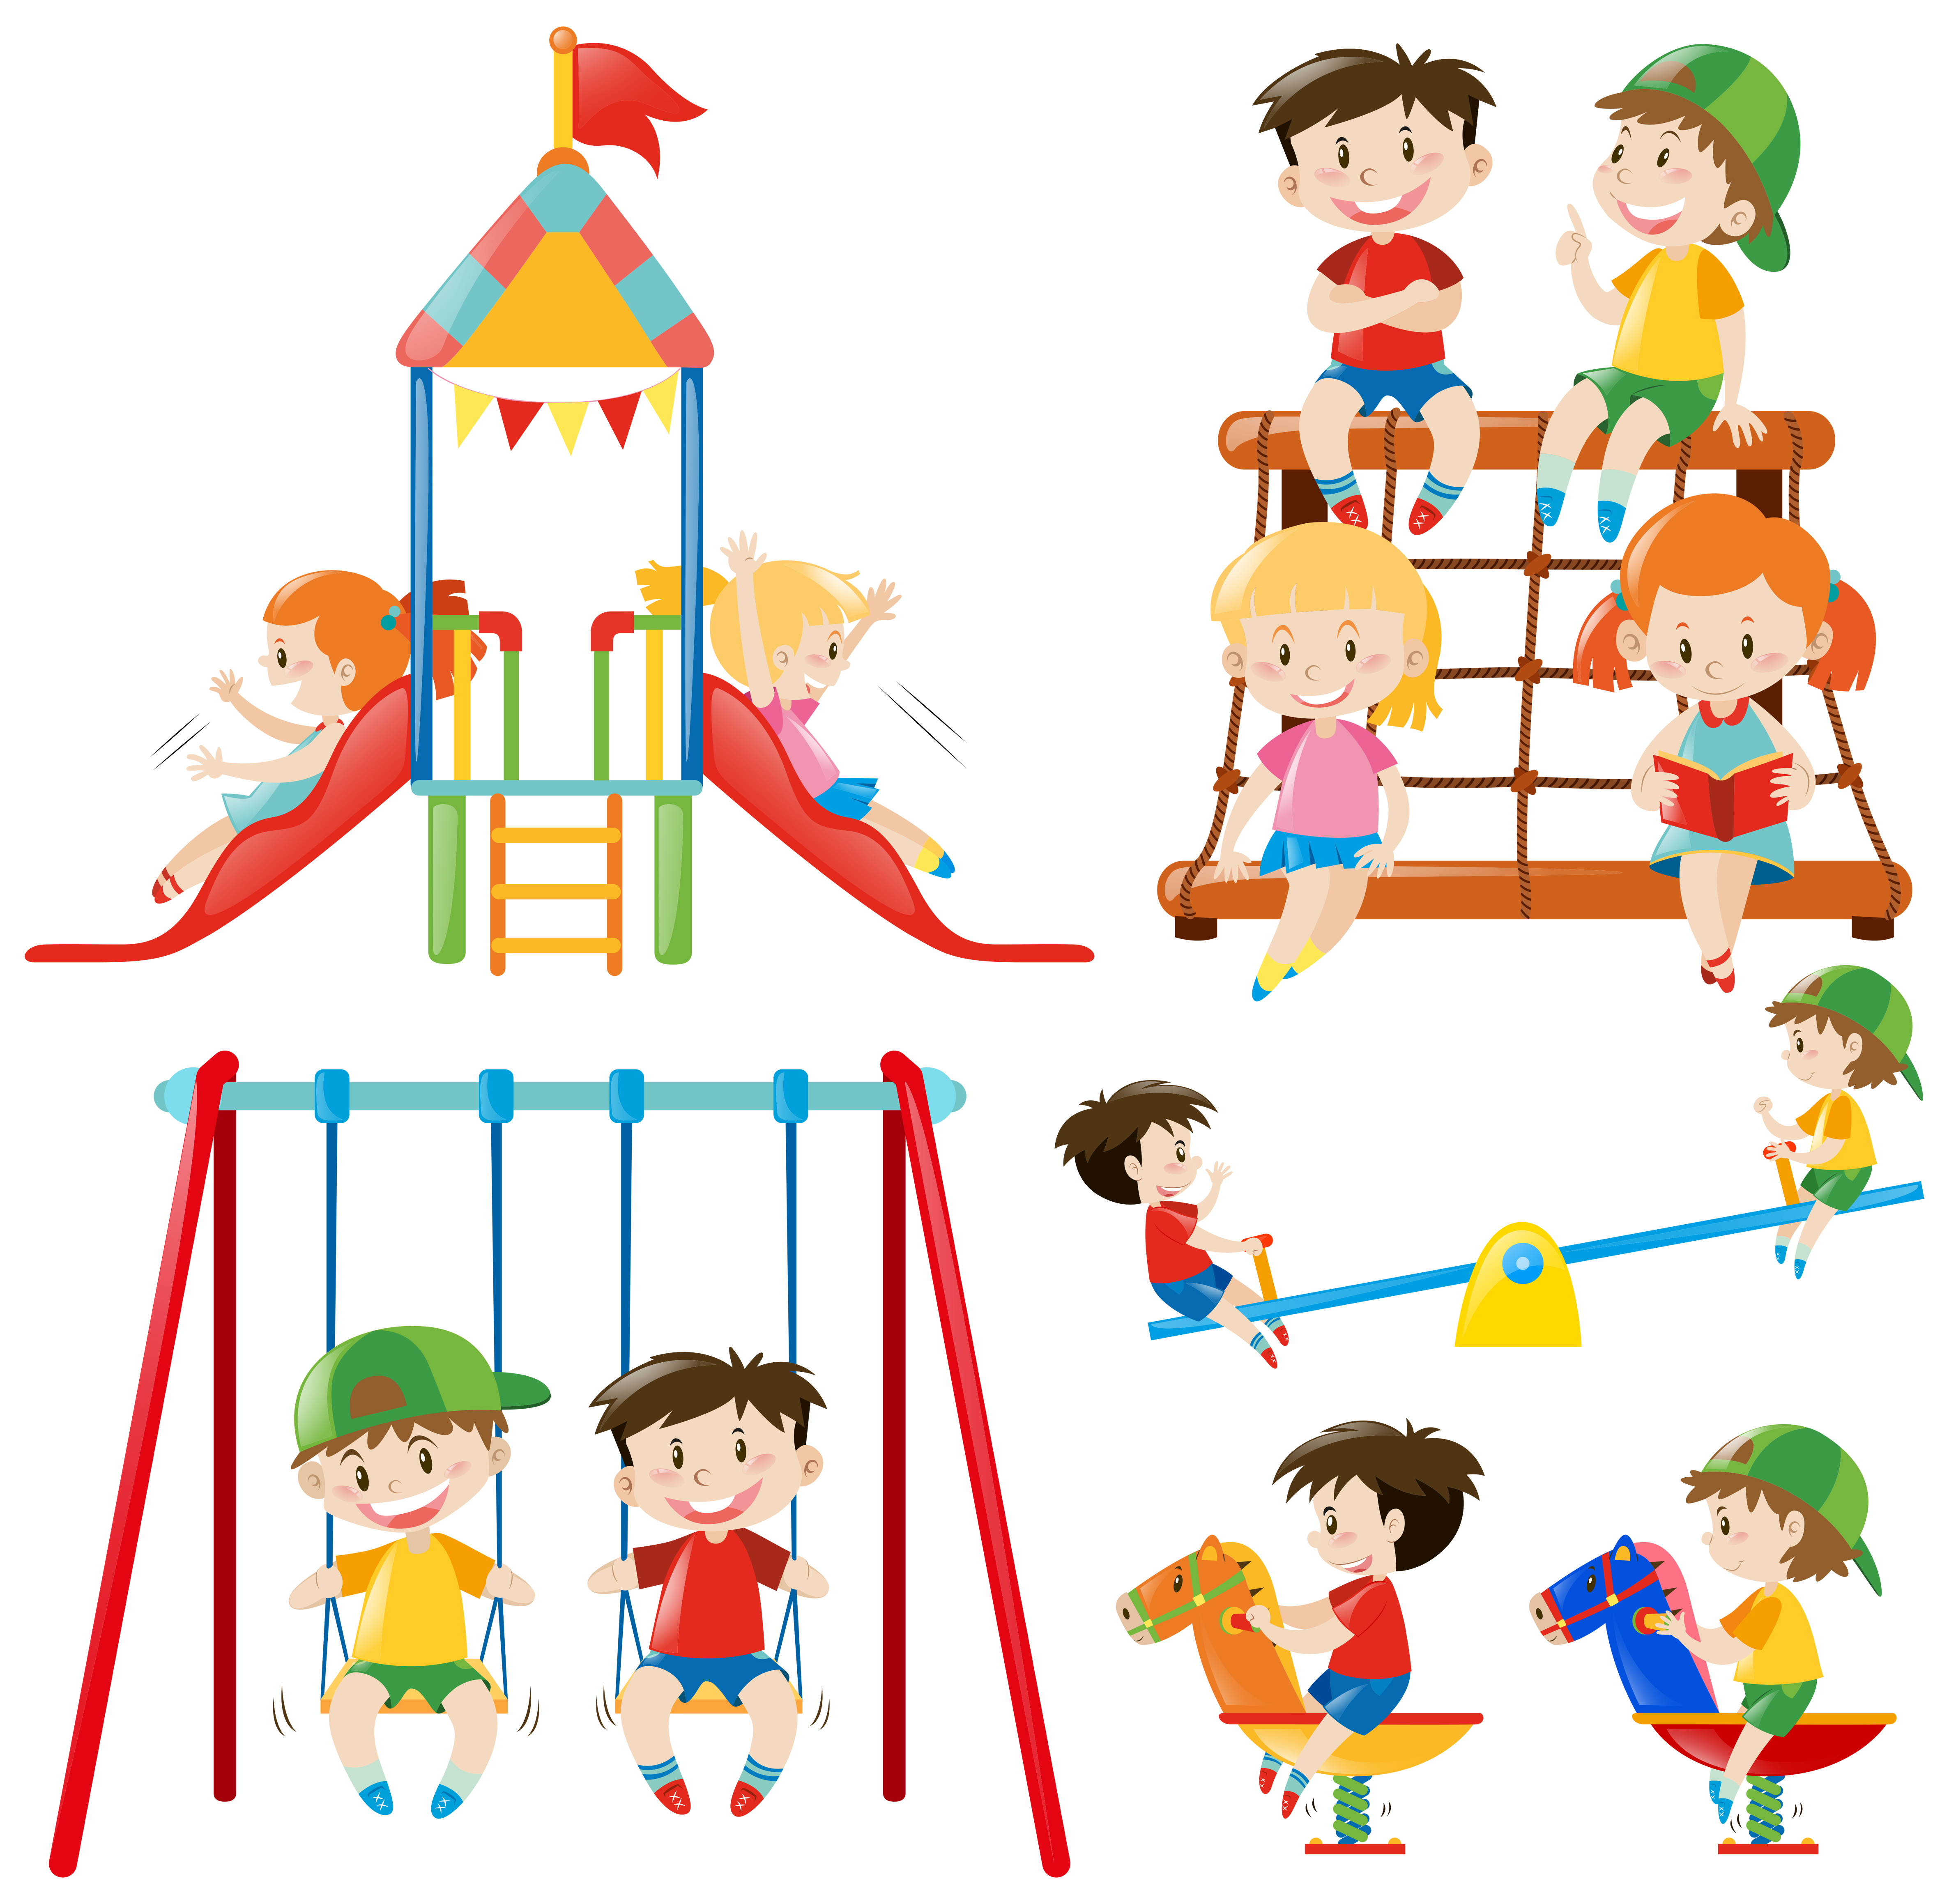 Many children playing in playground - Download Free Vector ...